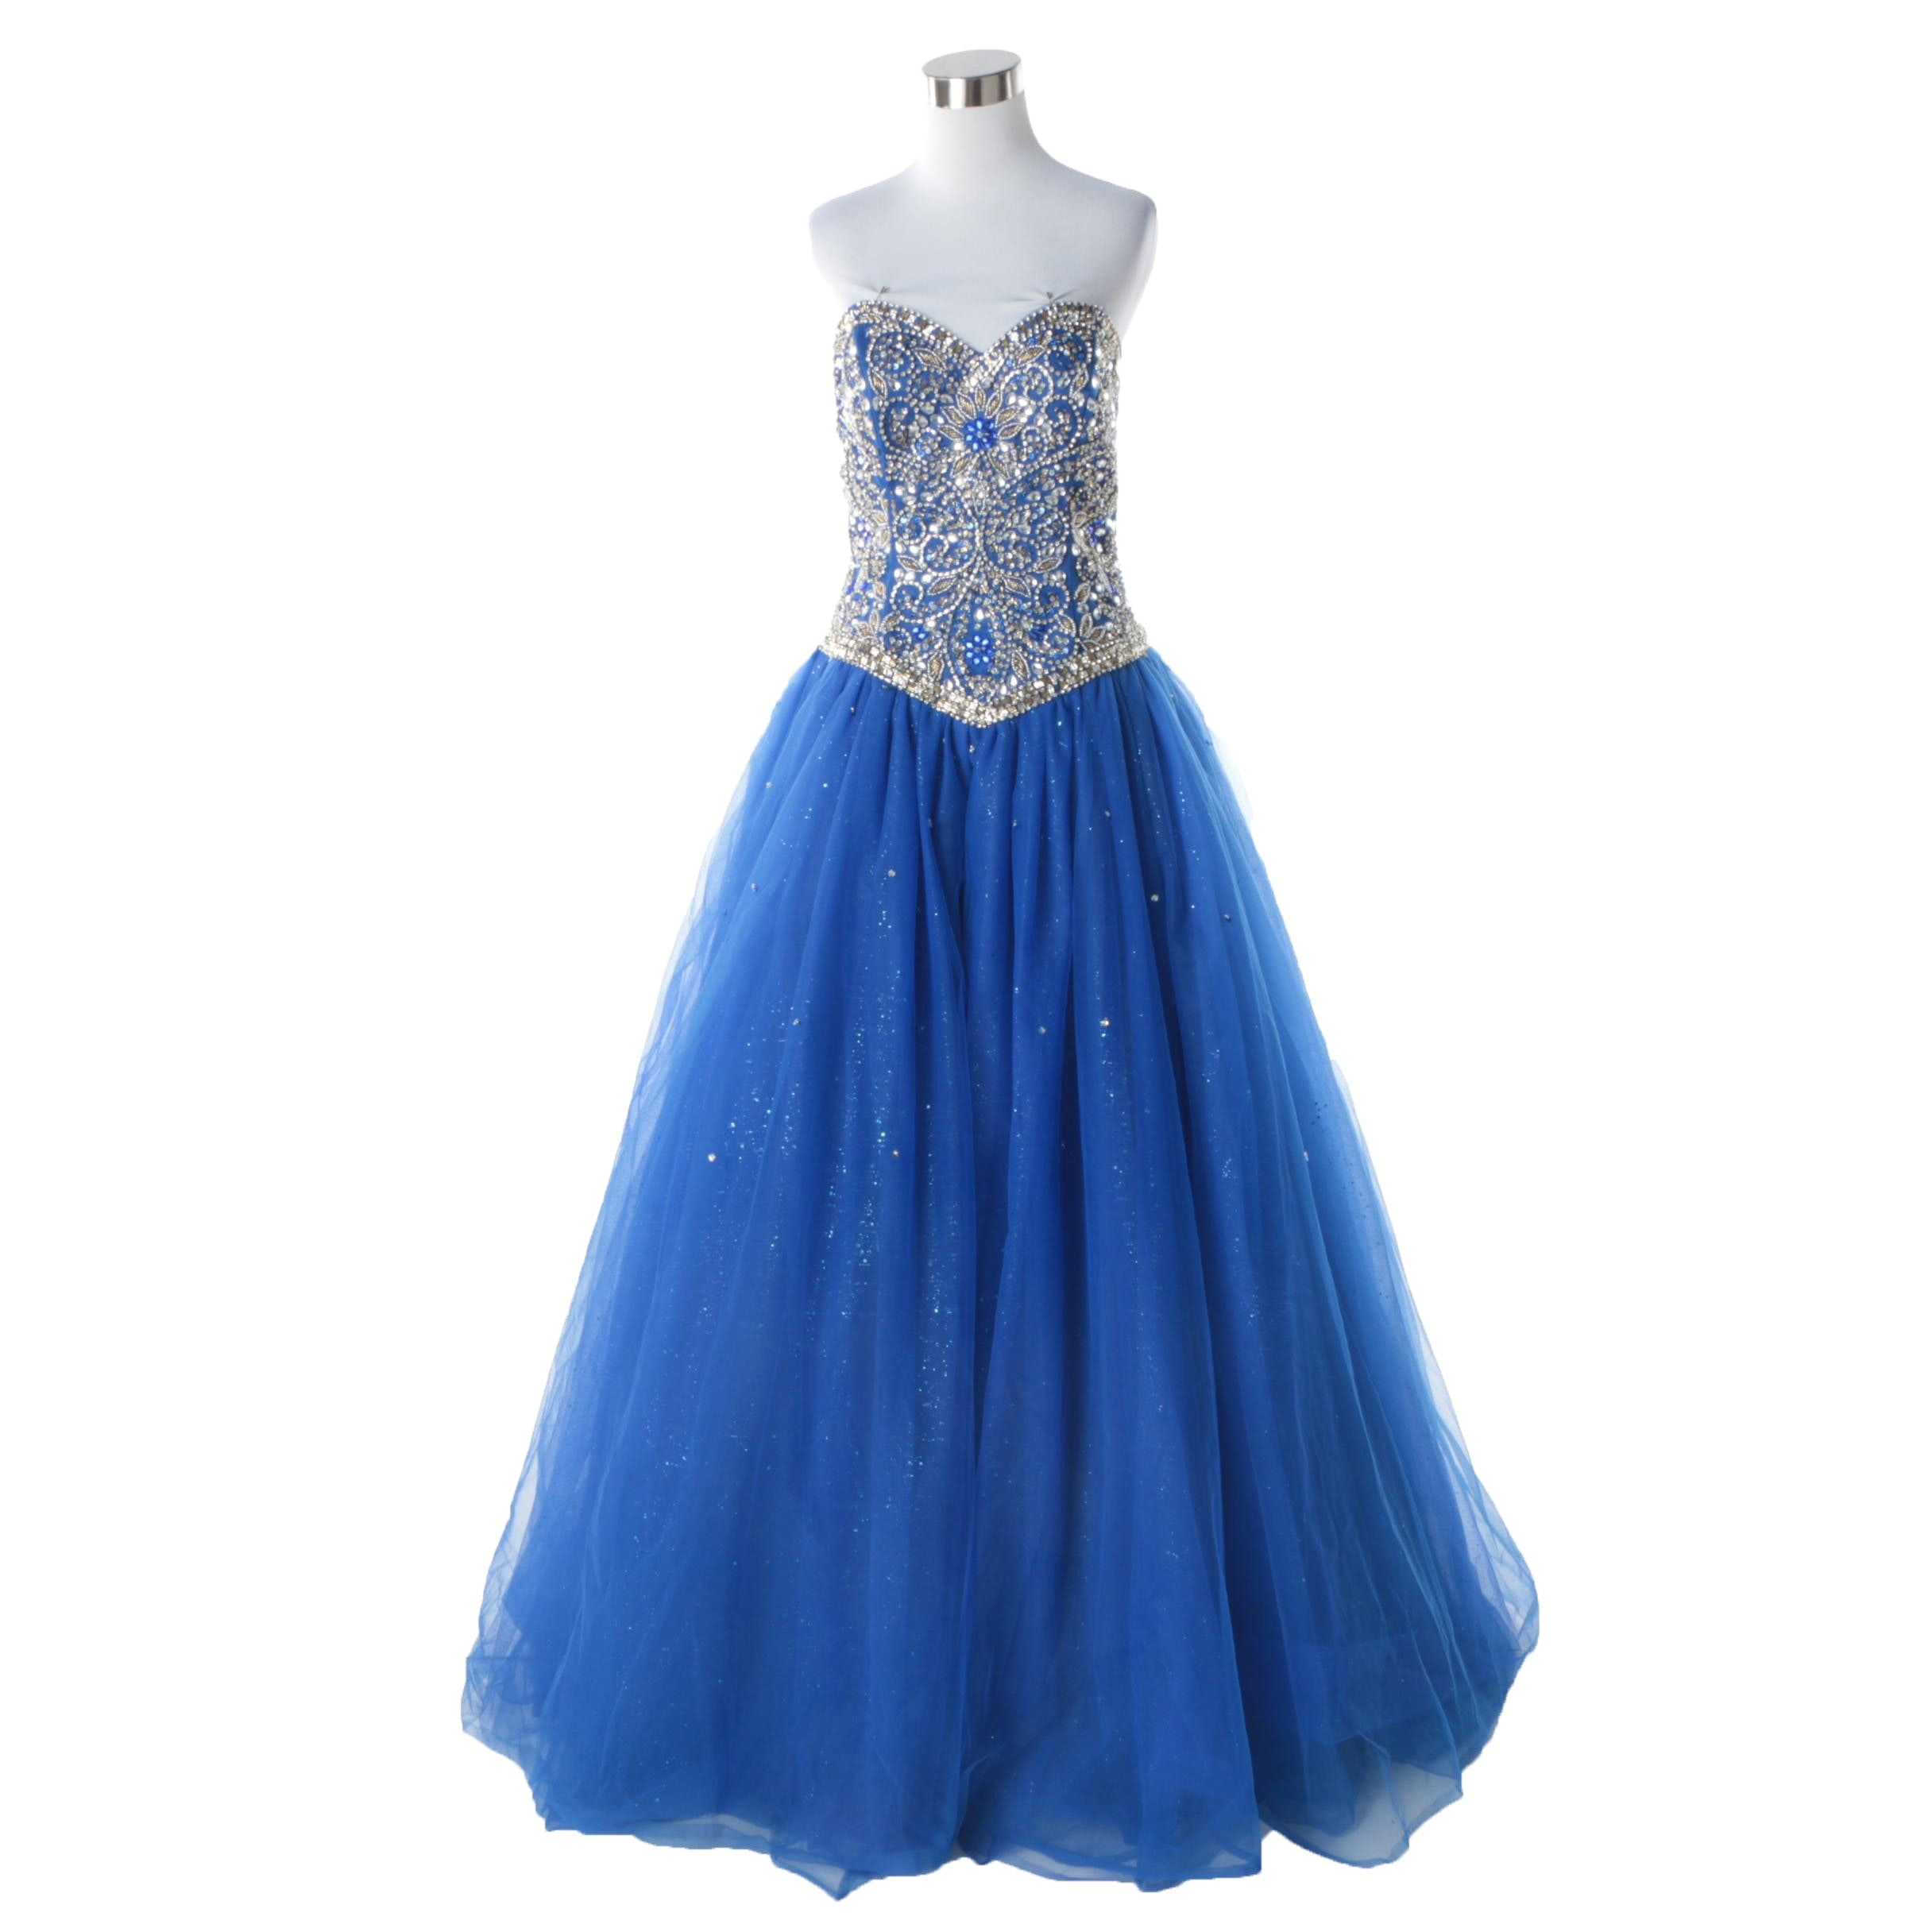 Mary's Brand Blue Beaded Strapless Ballgown